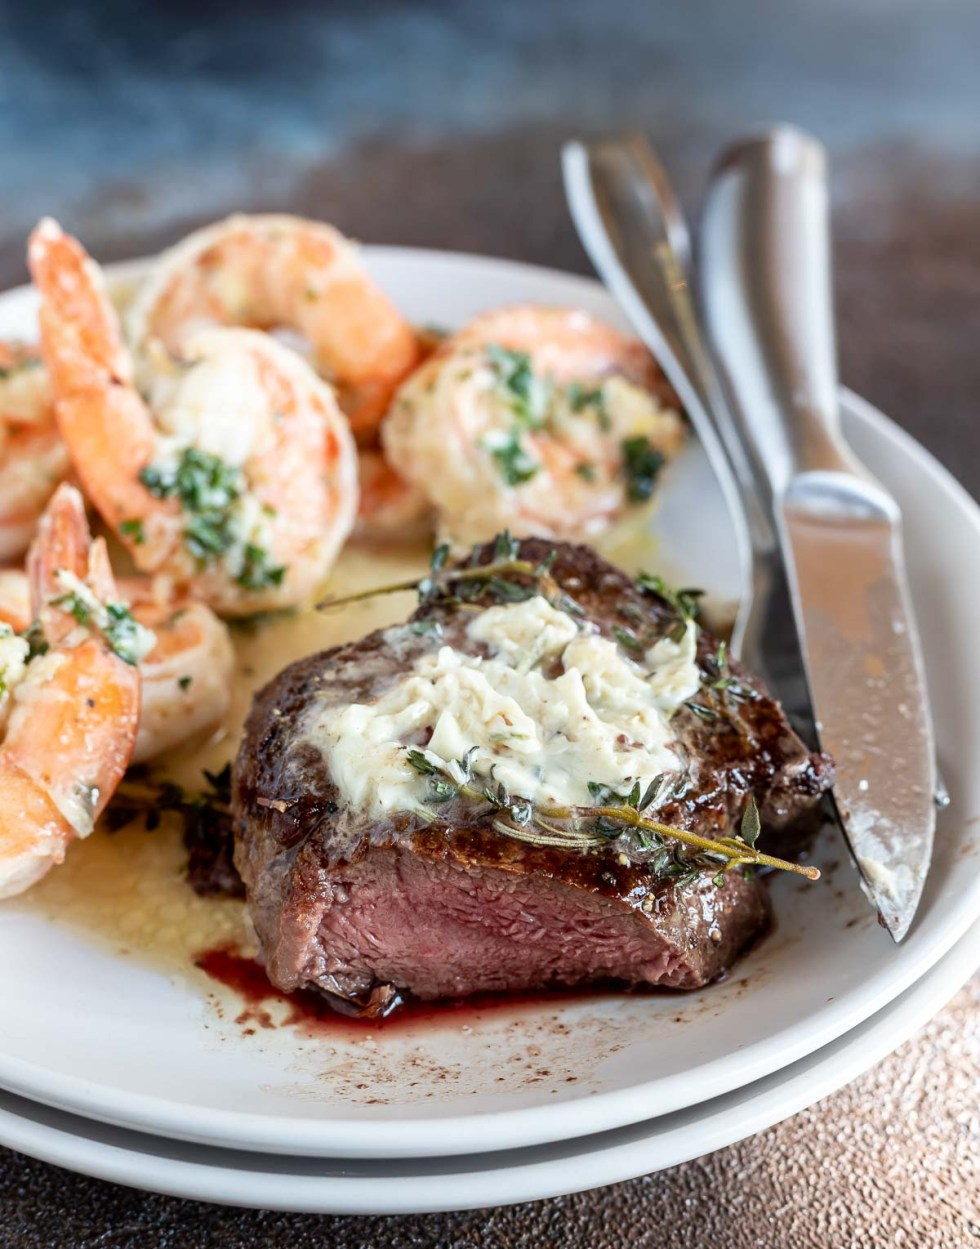 butter topped steak with slice cut out served next to shrimp on white plate